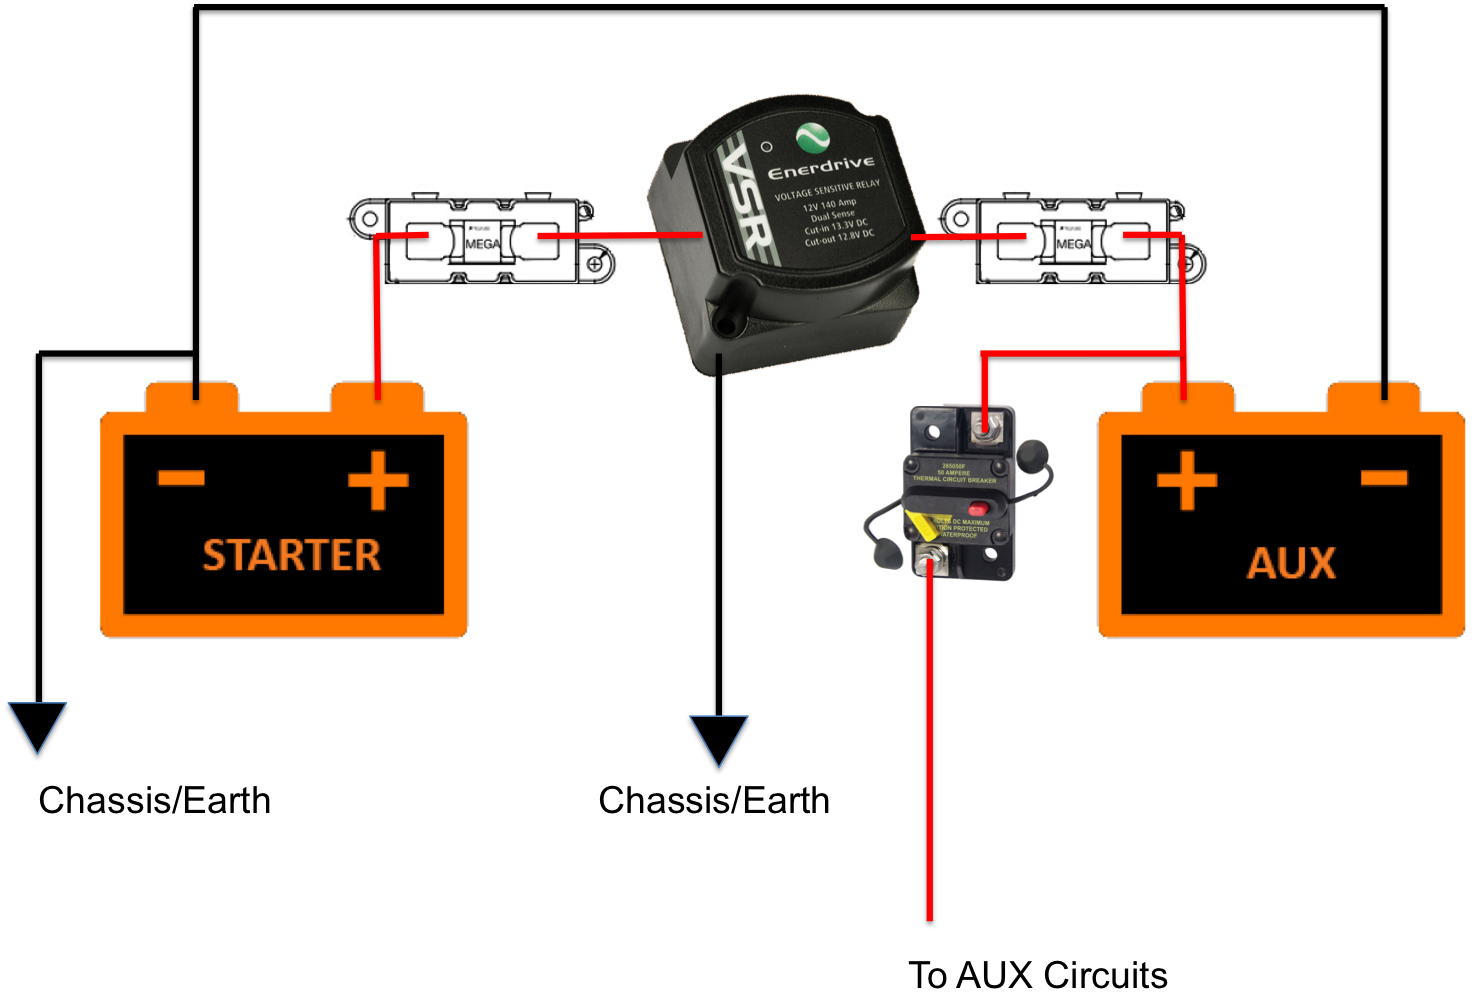 EnerderriveMegafuseBreaker install guides solid kit vsr wiring diagram at webbmarketing.co